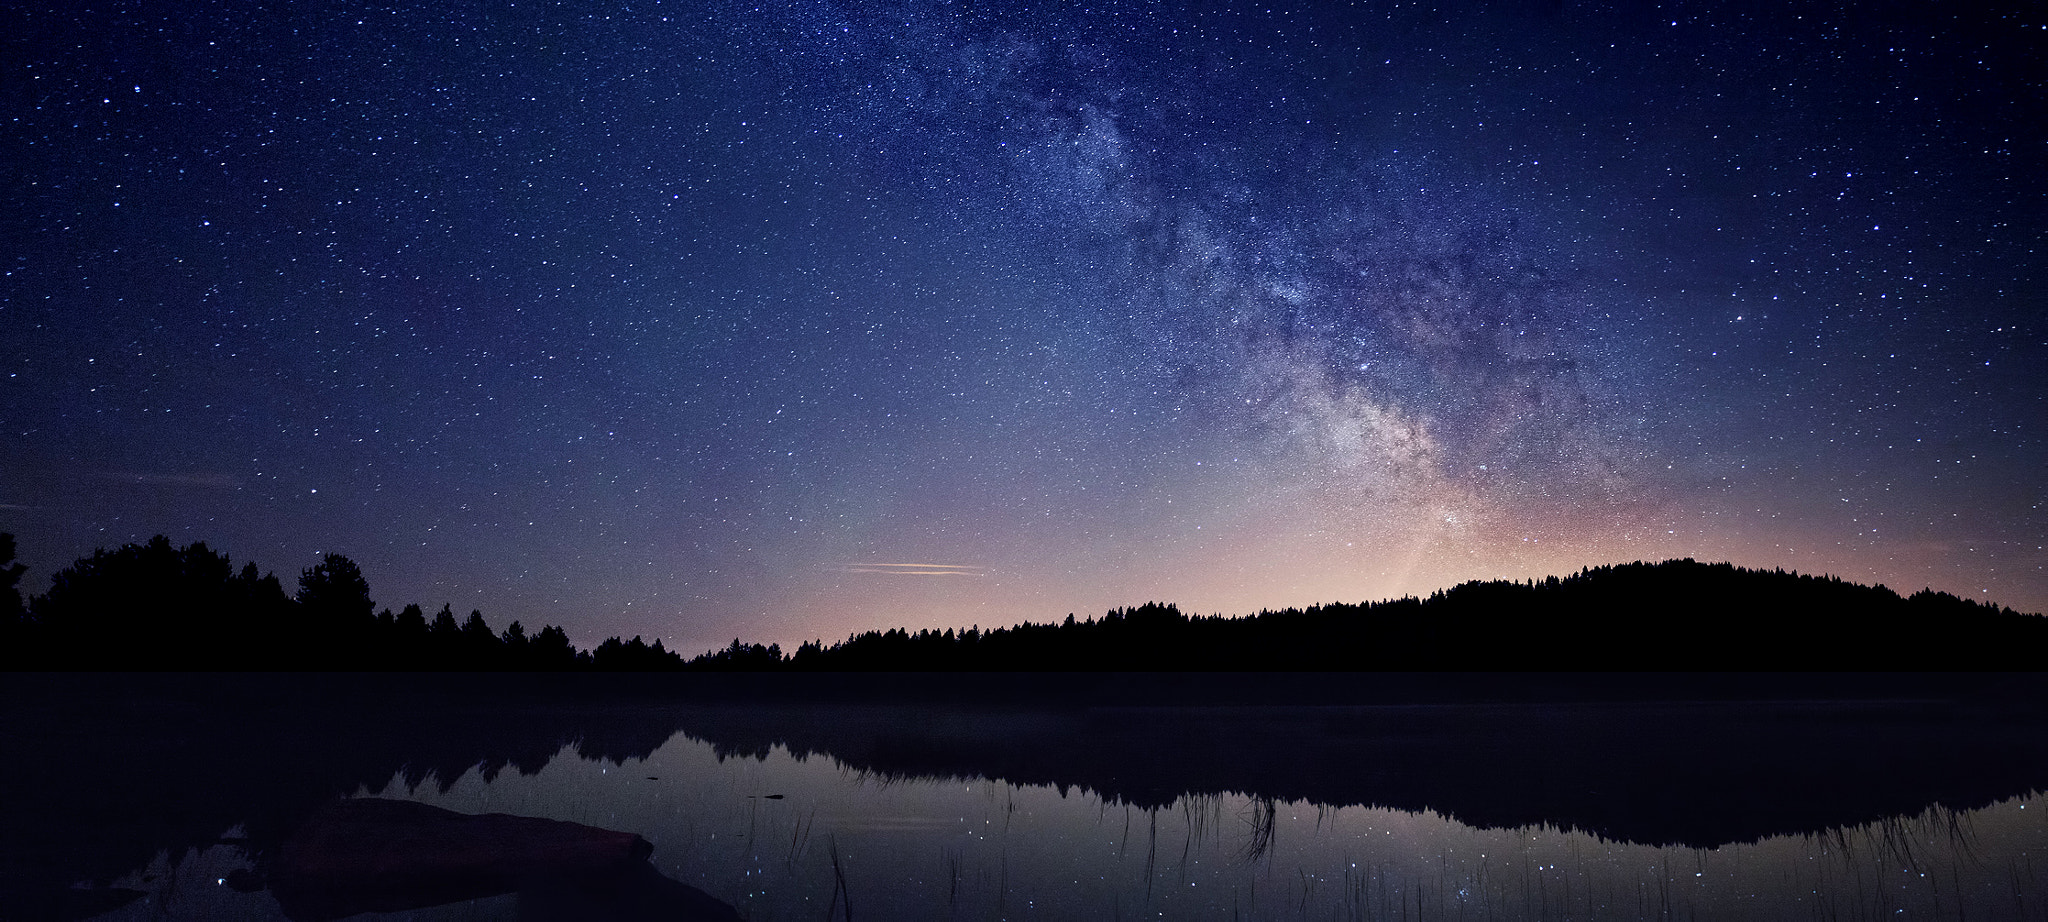 Photograph Milky Way by Jorge Escobedo on 500px